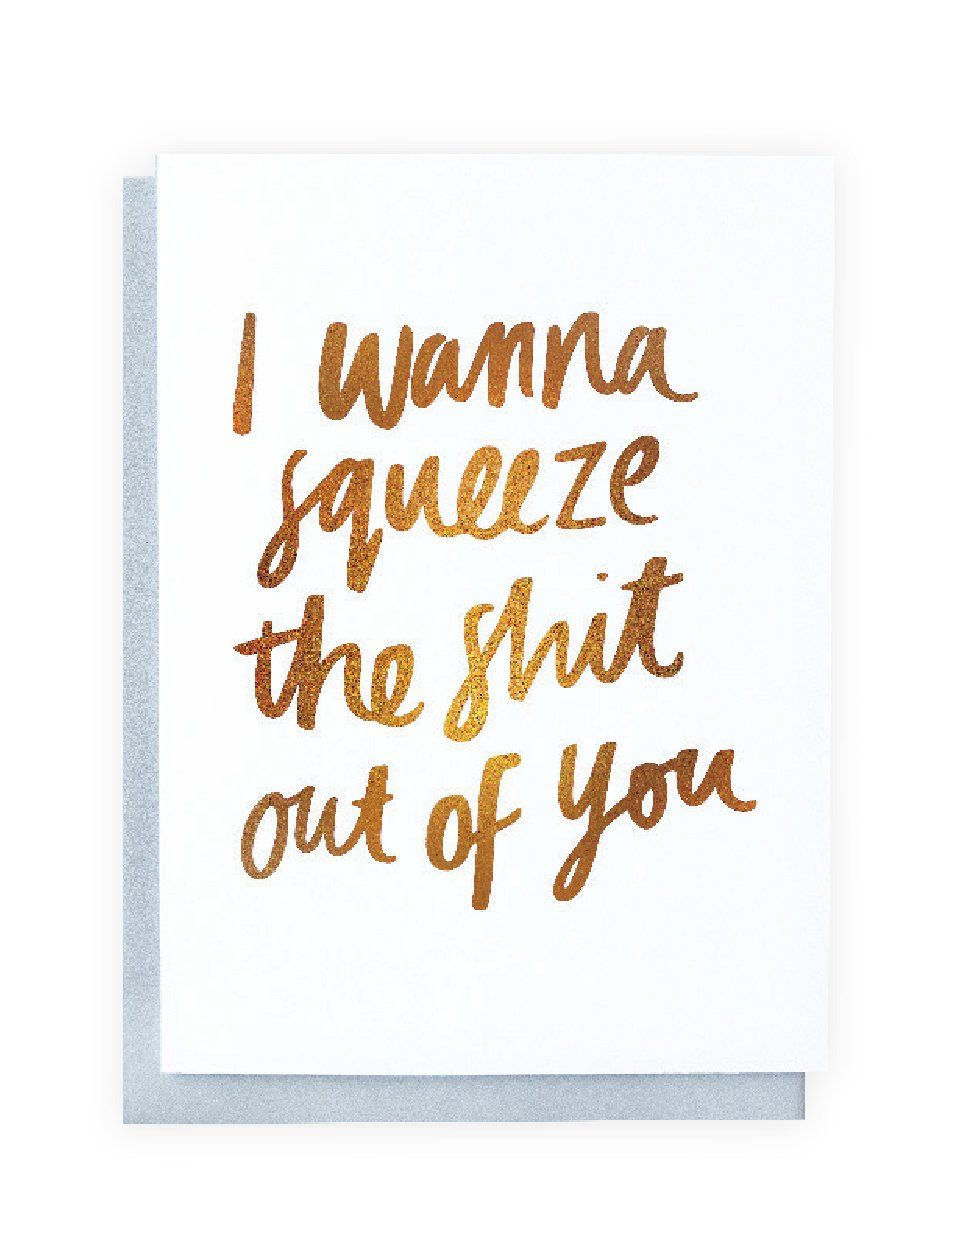 Squeeze You! foiled greeting card | Blushing Confetti